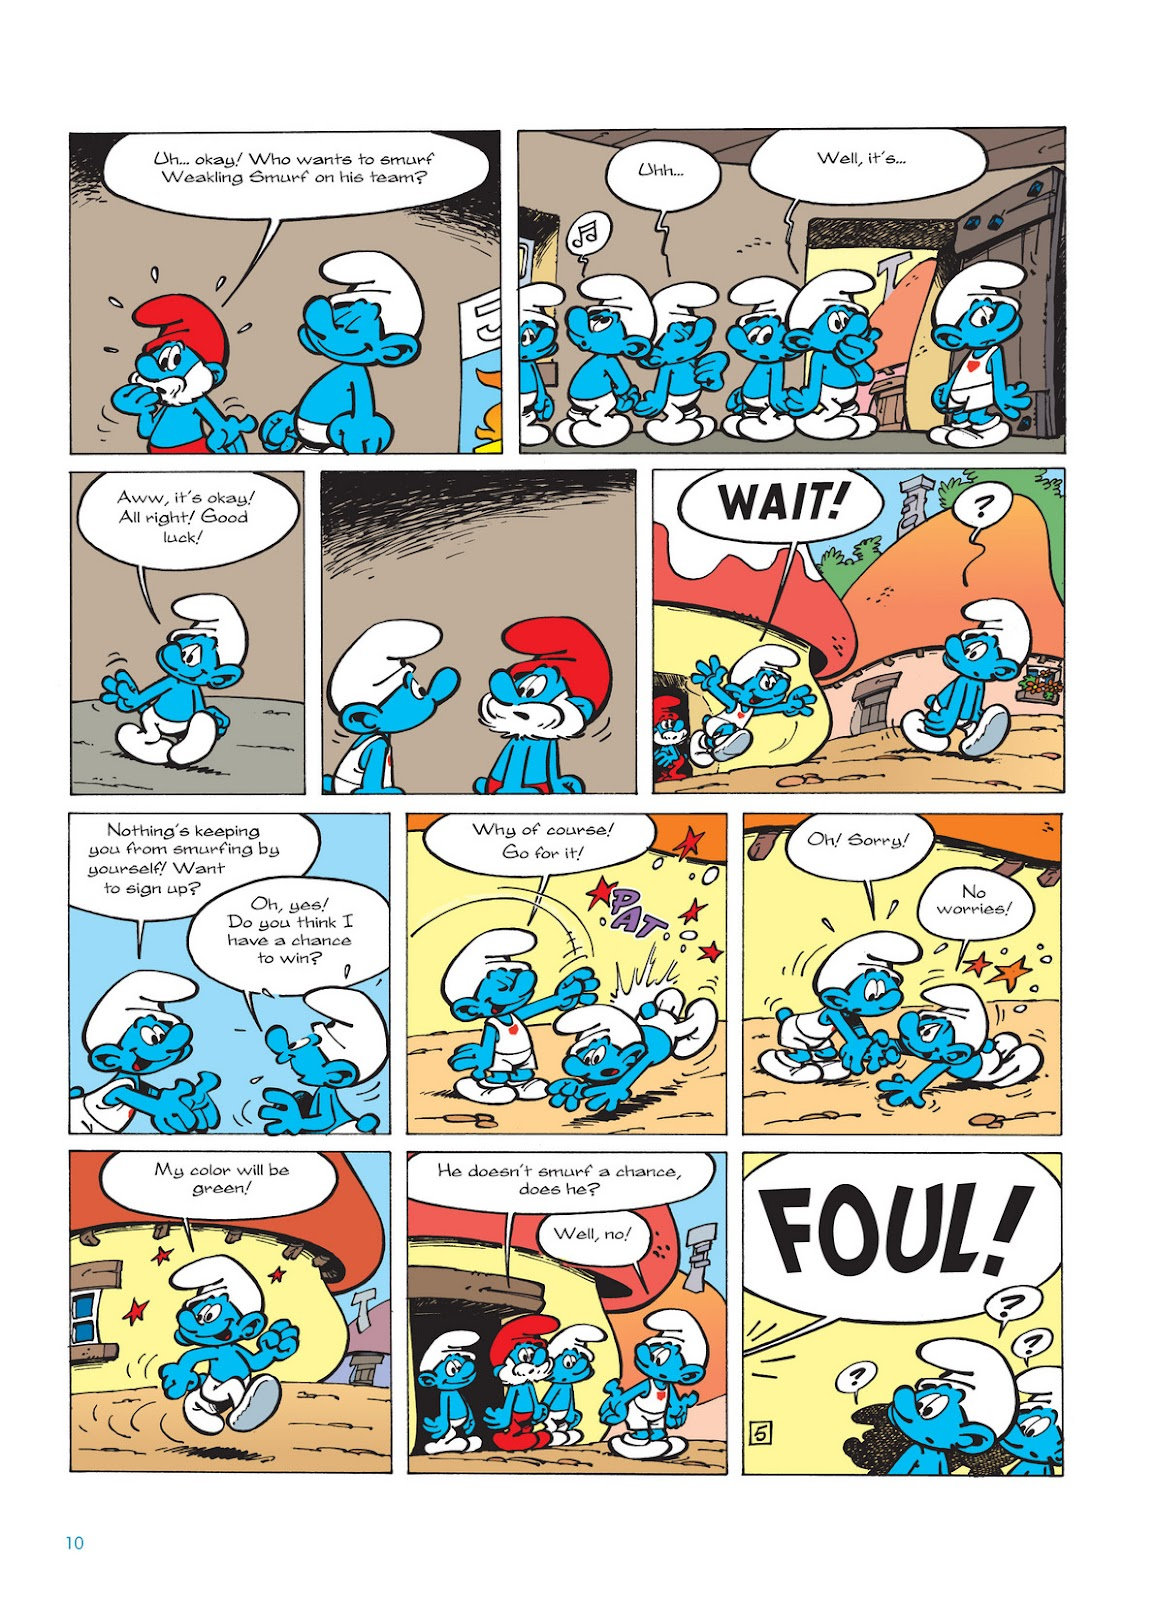 Read online The Smurfs comic -  Issue #11 - 10